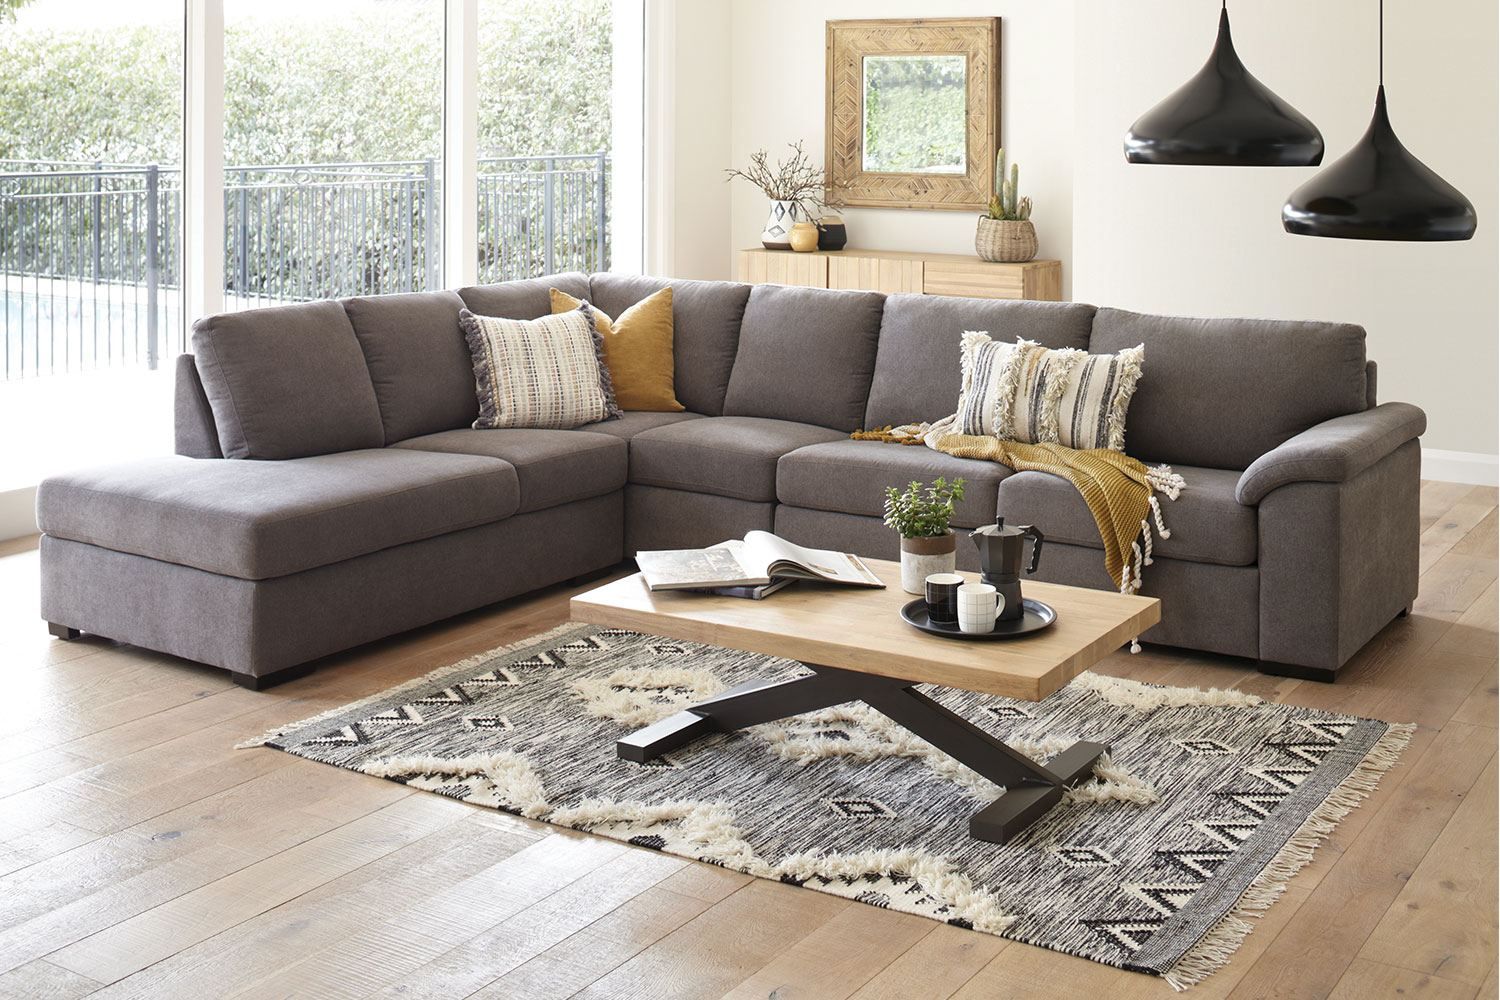 lazy boy chairs nz grey kitchen table and nebula 5 seater fabric corner lounge suite with sofa bed